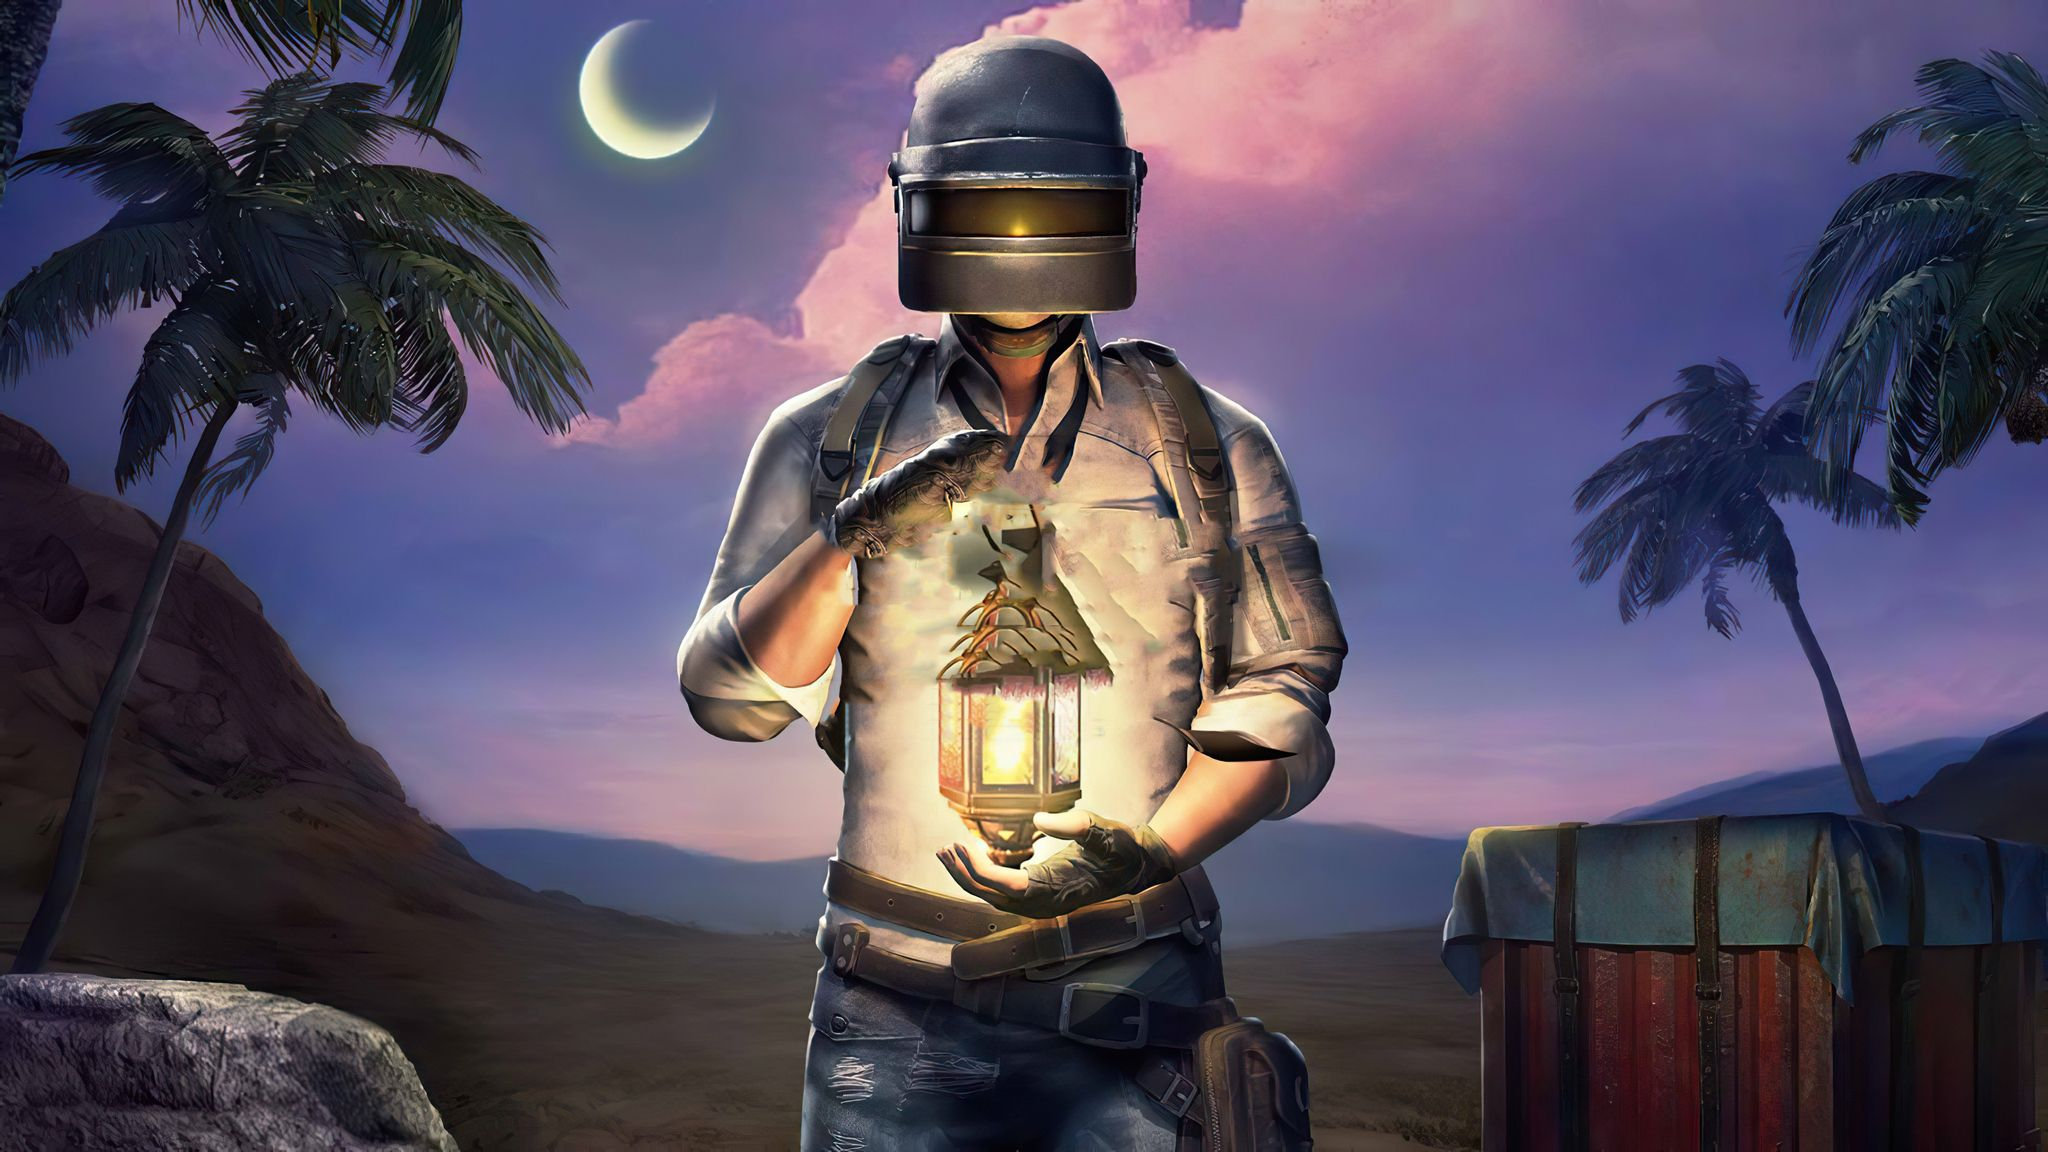 20 Best Pubg Wallpapers In Hd Download For Pc And Mobile Wallpaper Jungle Wallpaper Live Wallpapers Get inspired for pubg hd wallpaper for